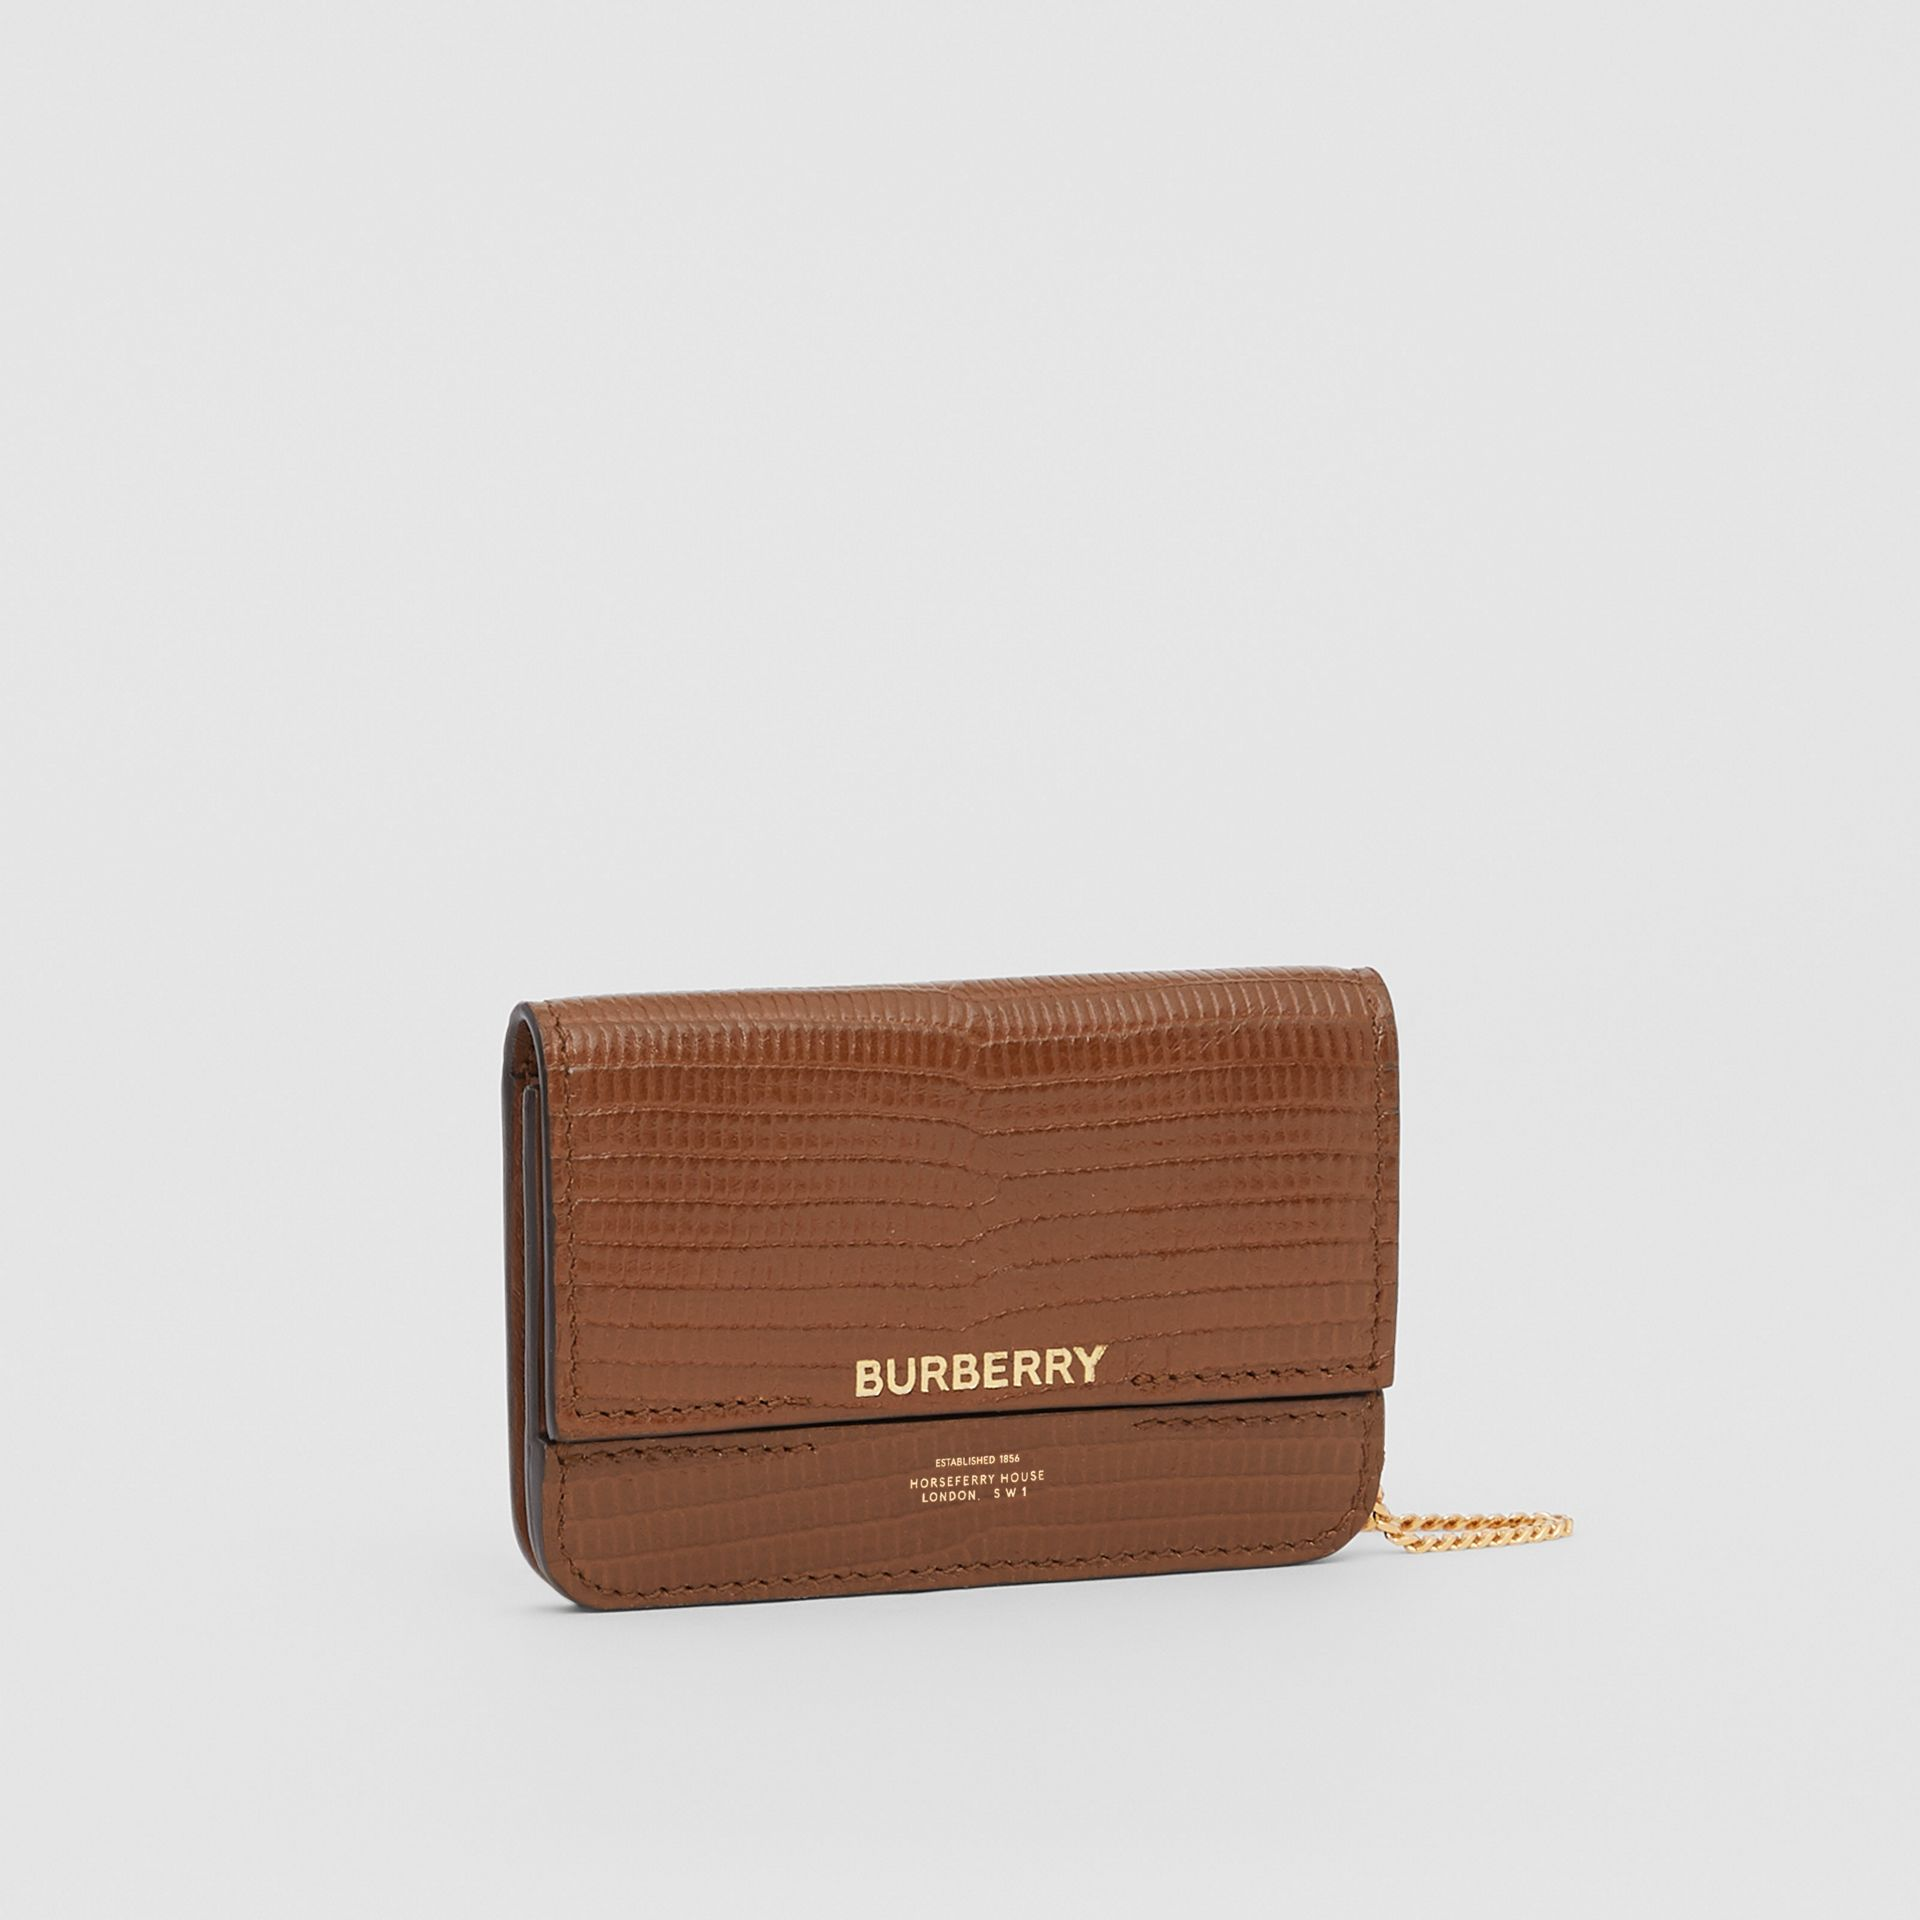 Embossed Deerskin Card Case with Chain Strap in Tan - Women | Burberry - gallery image 7